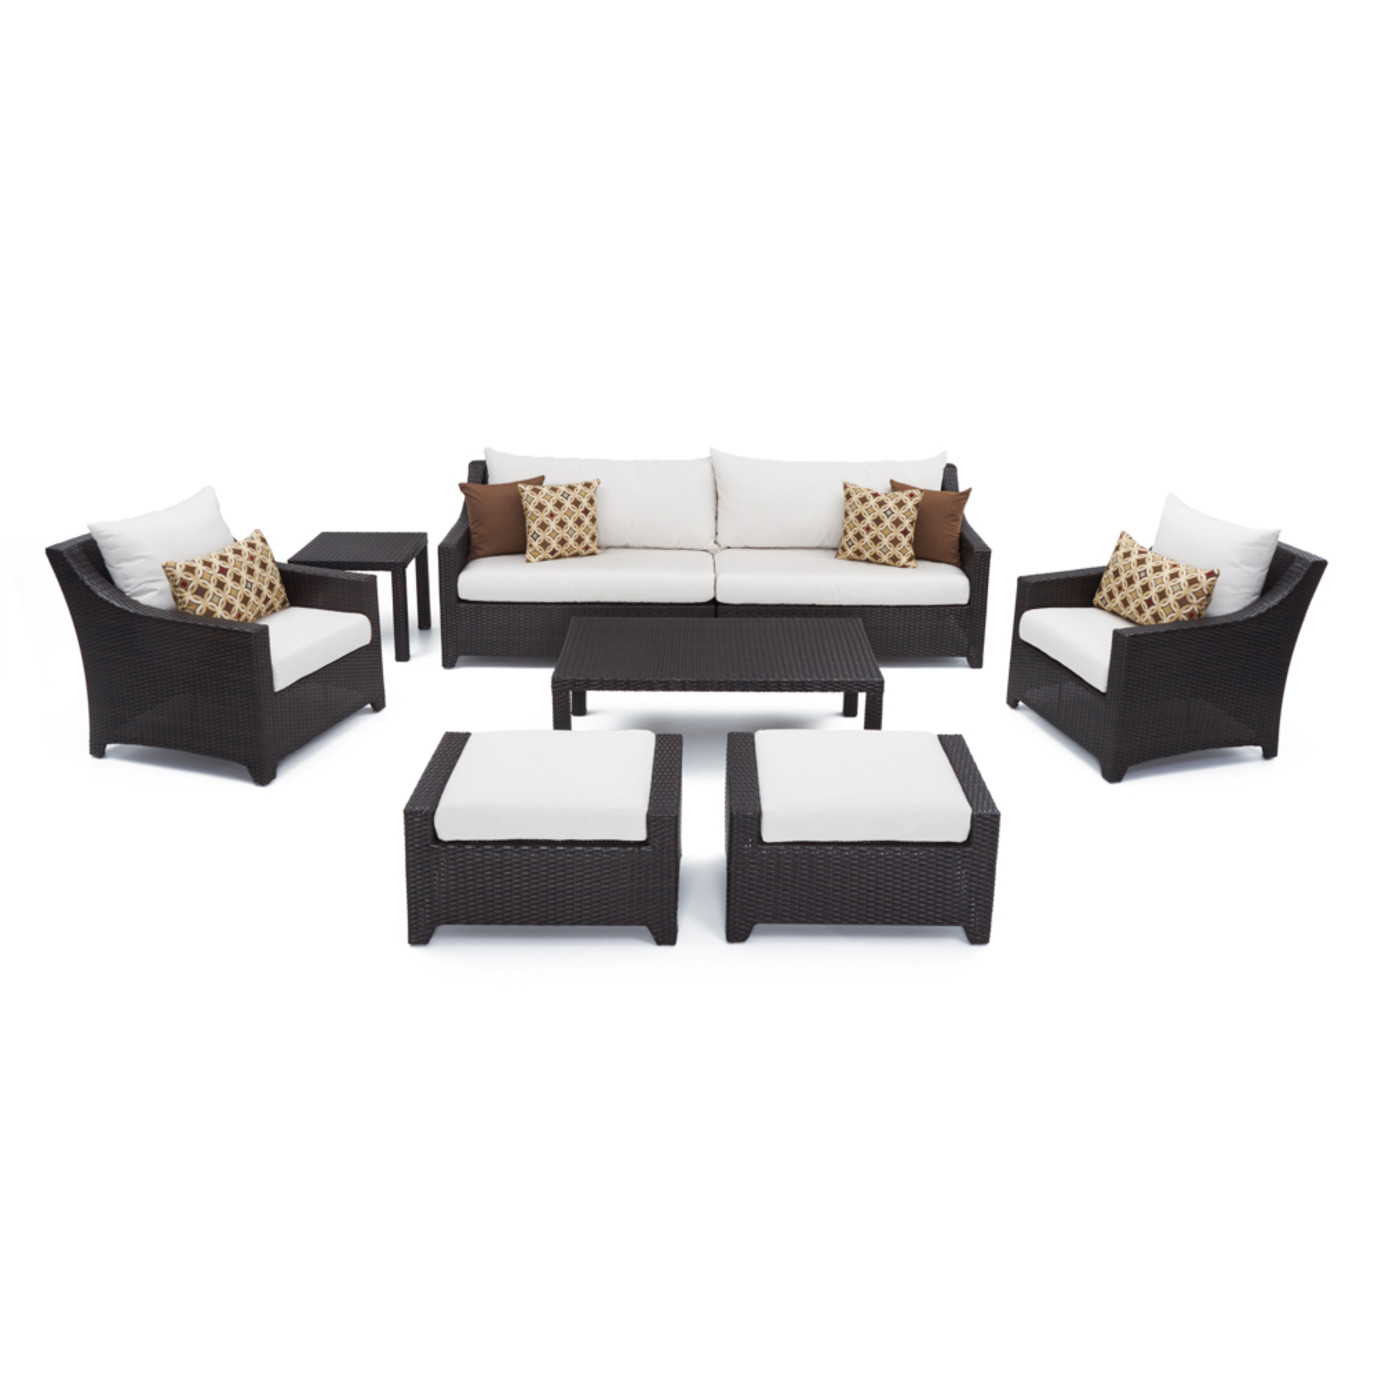 Deco™ 8pc Sofa Set with Furniture Covers - Moroccan Cream